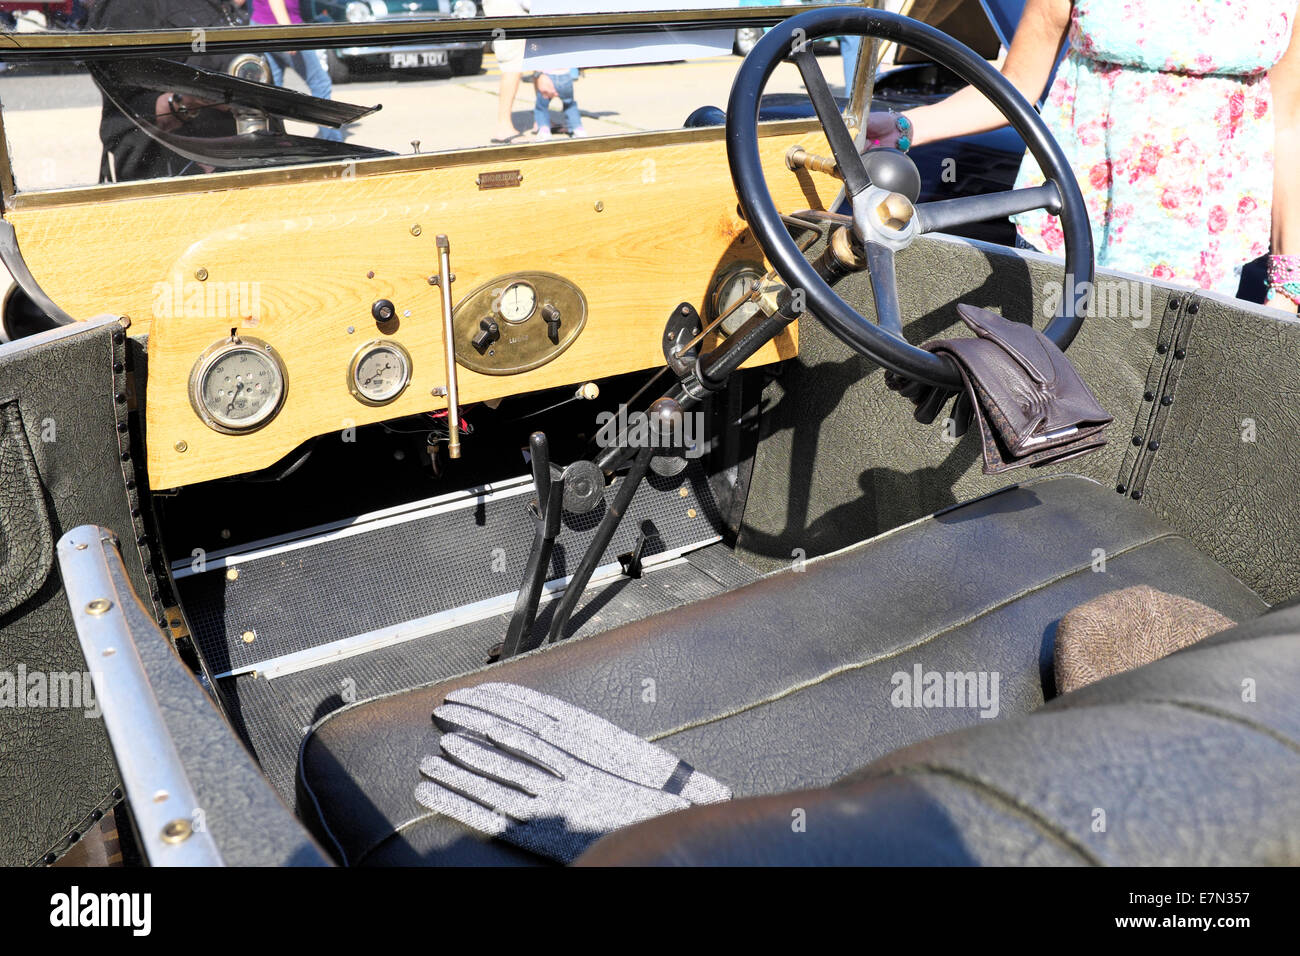 Interior of 1924 Morris Motors Automobile at Brits on the beach car show in Ocean Grove, NJ - Stock Image